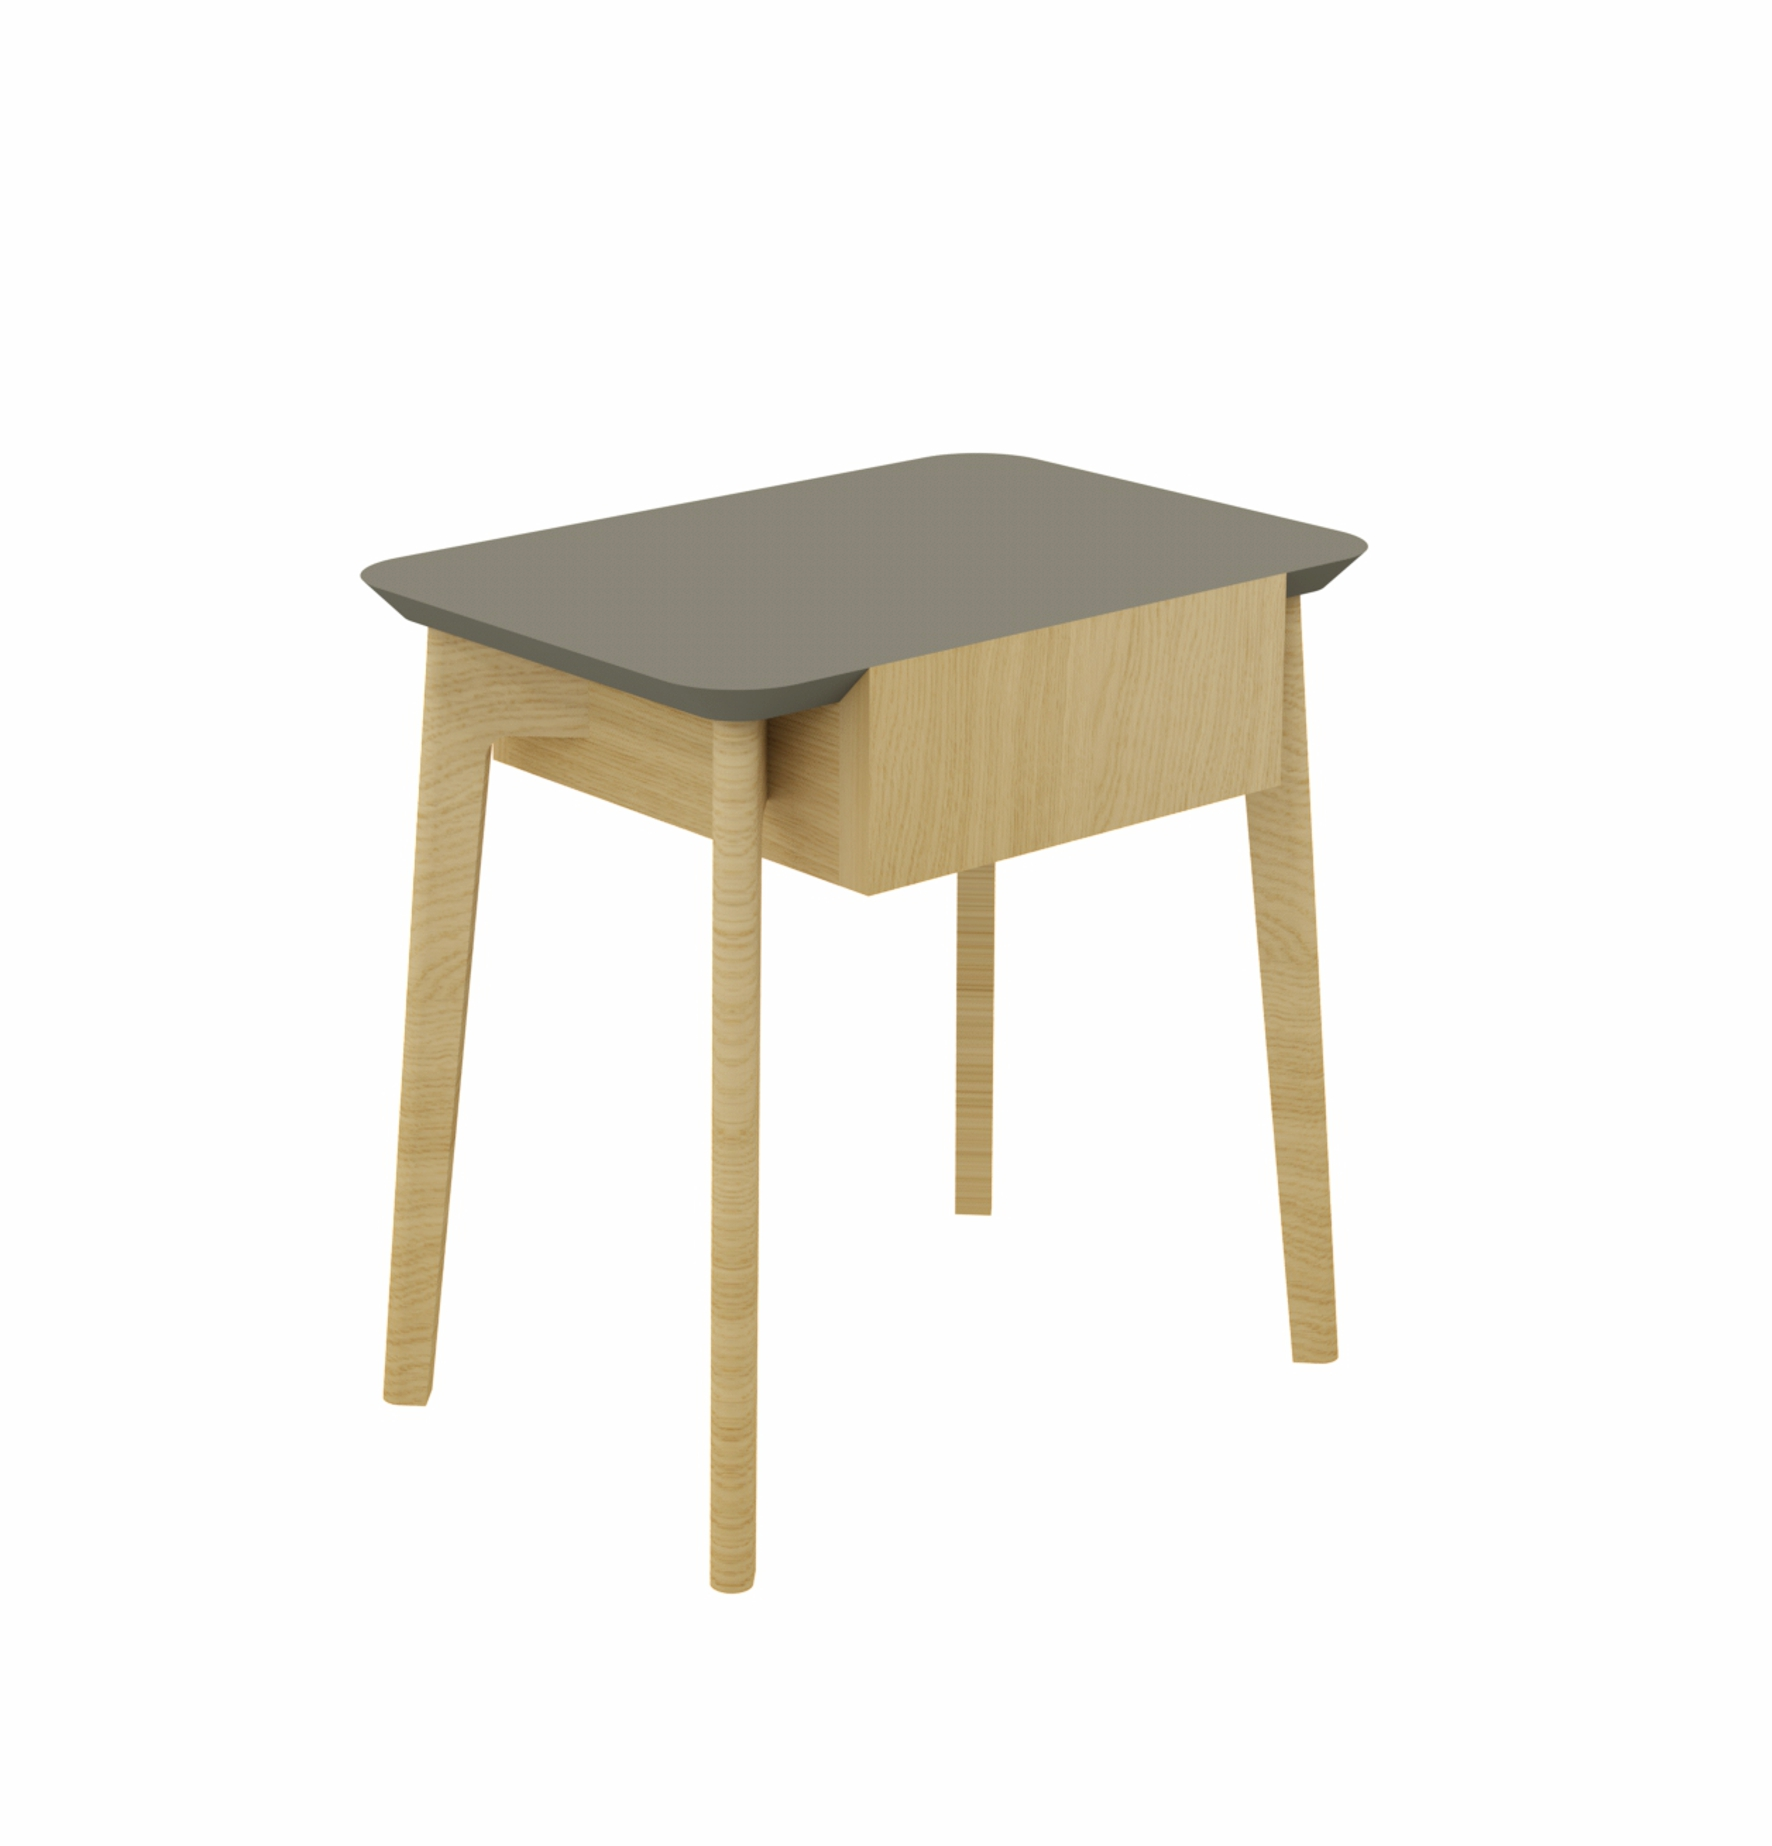 SiSi small table with a drawer